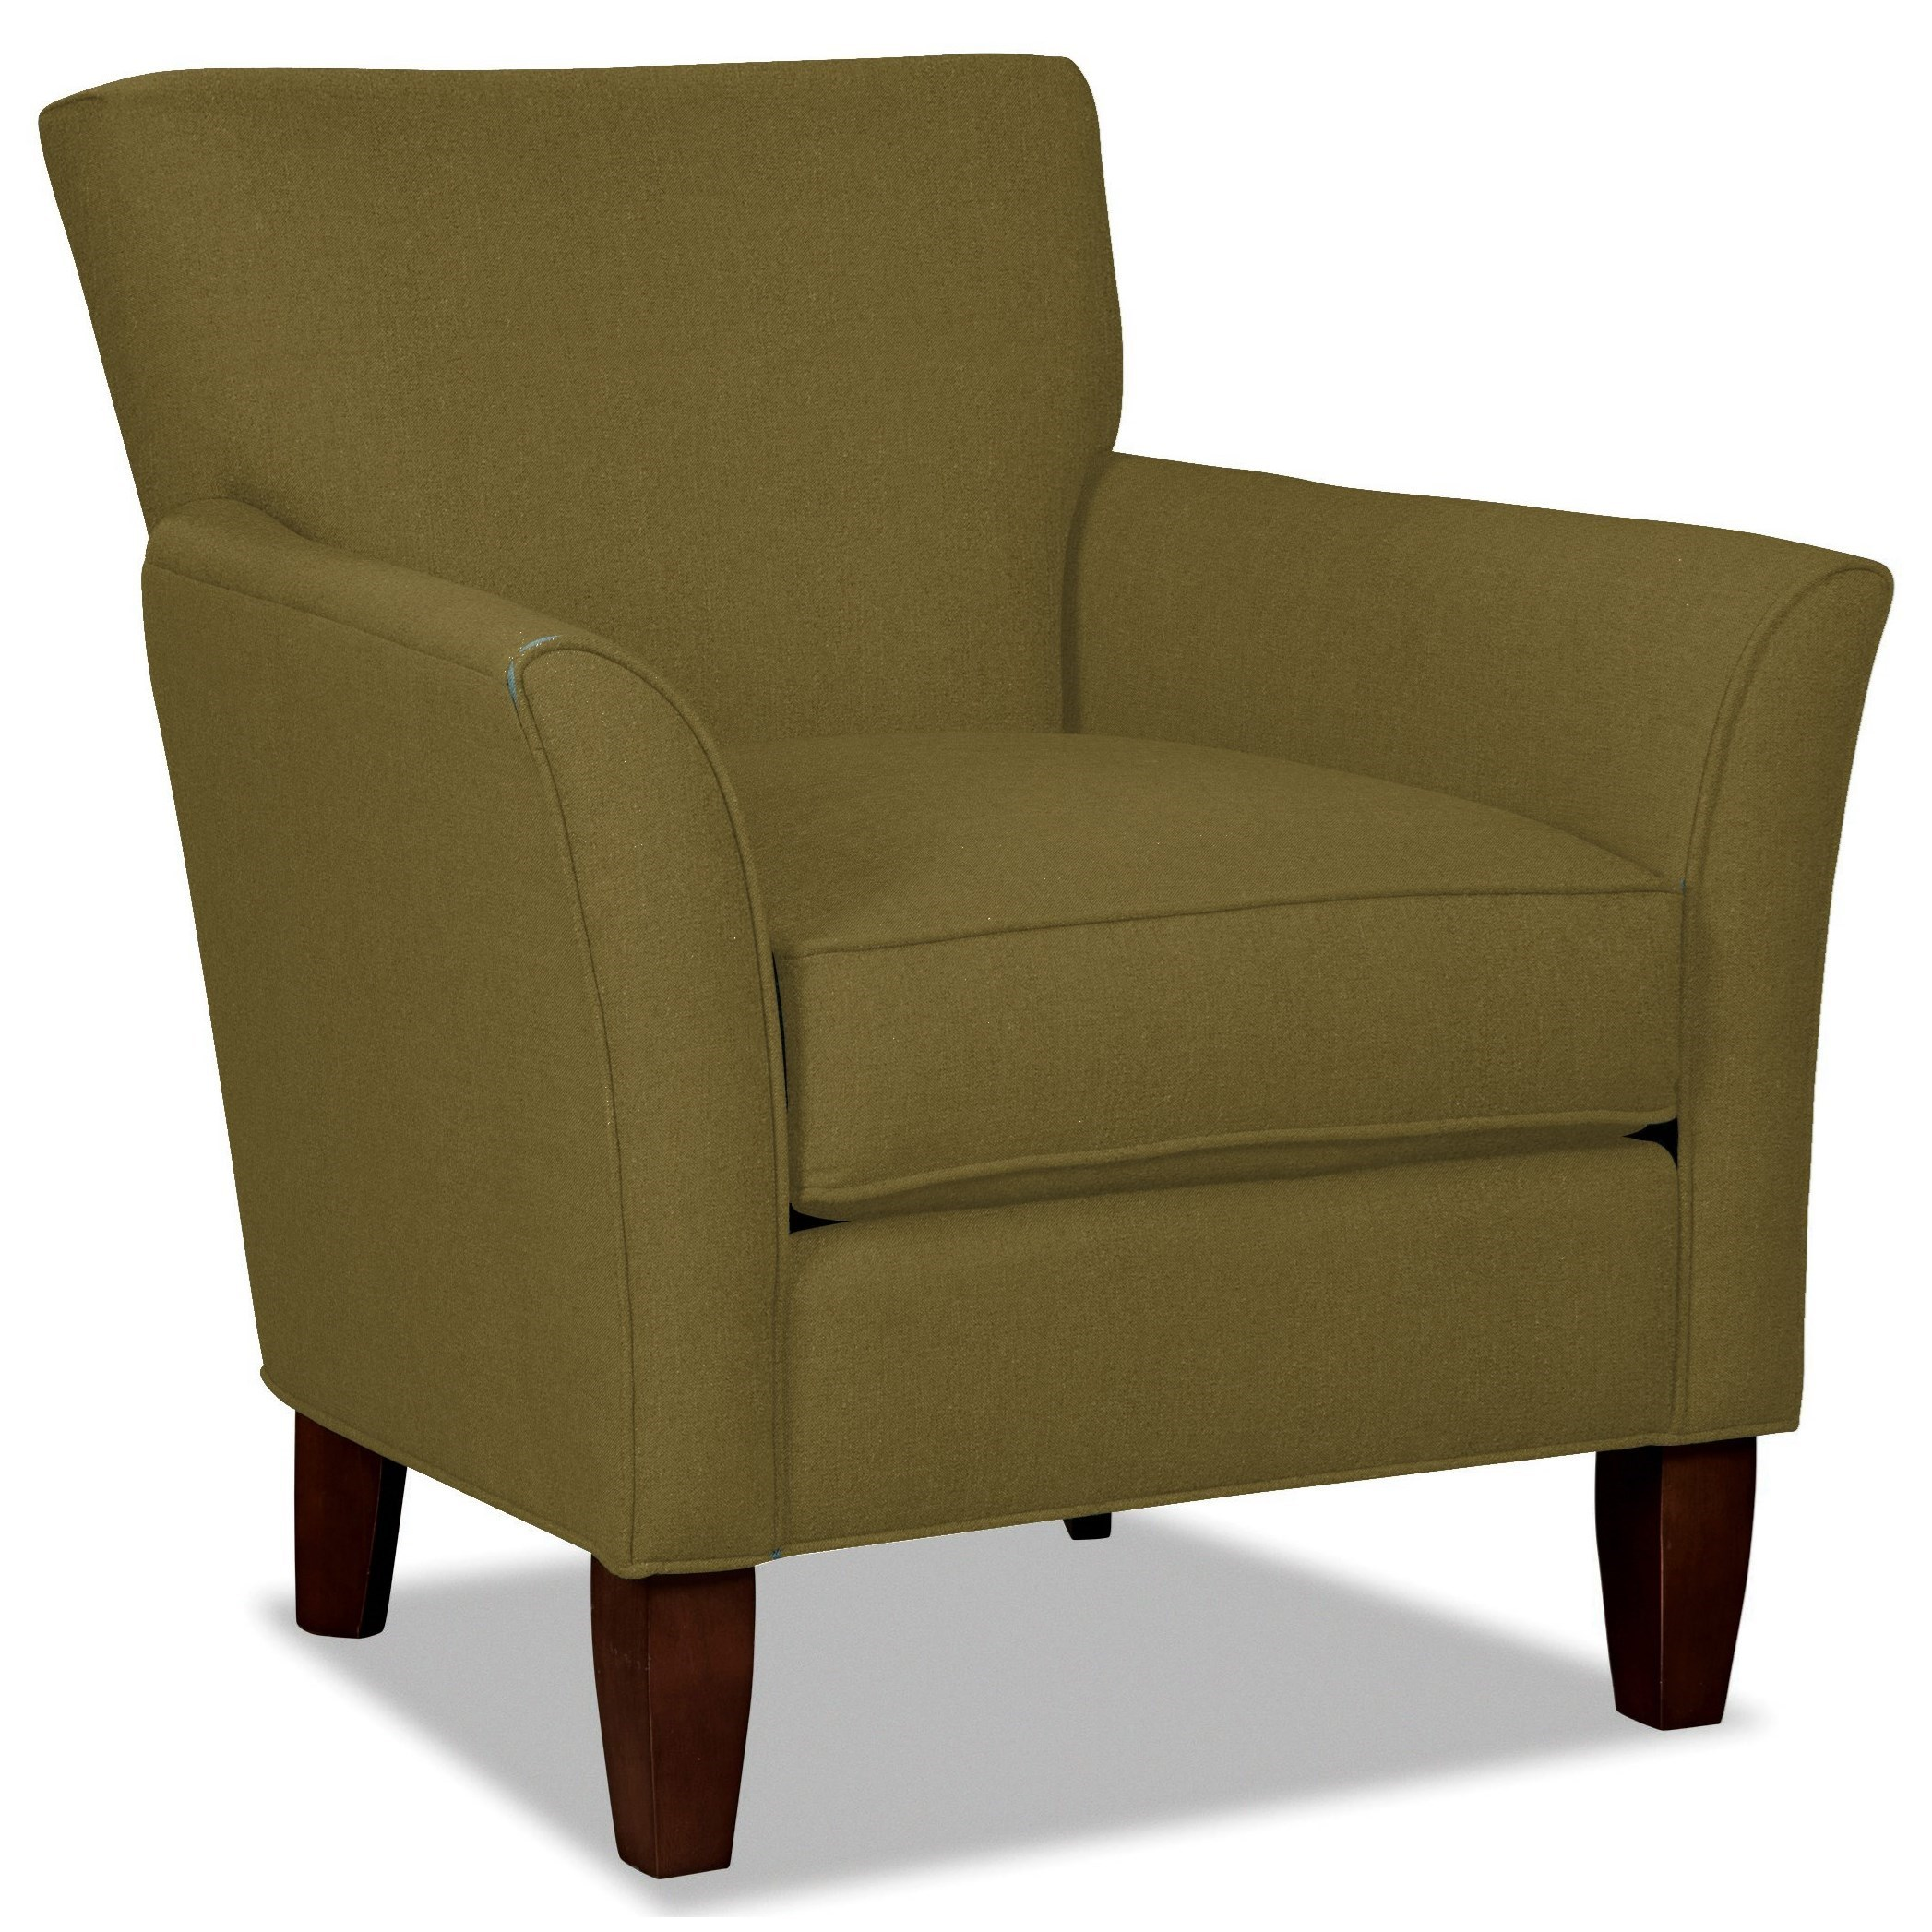 Craftmaster 060110 Accent Chair - Item Number: 060110-DIVER-09